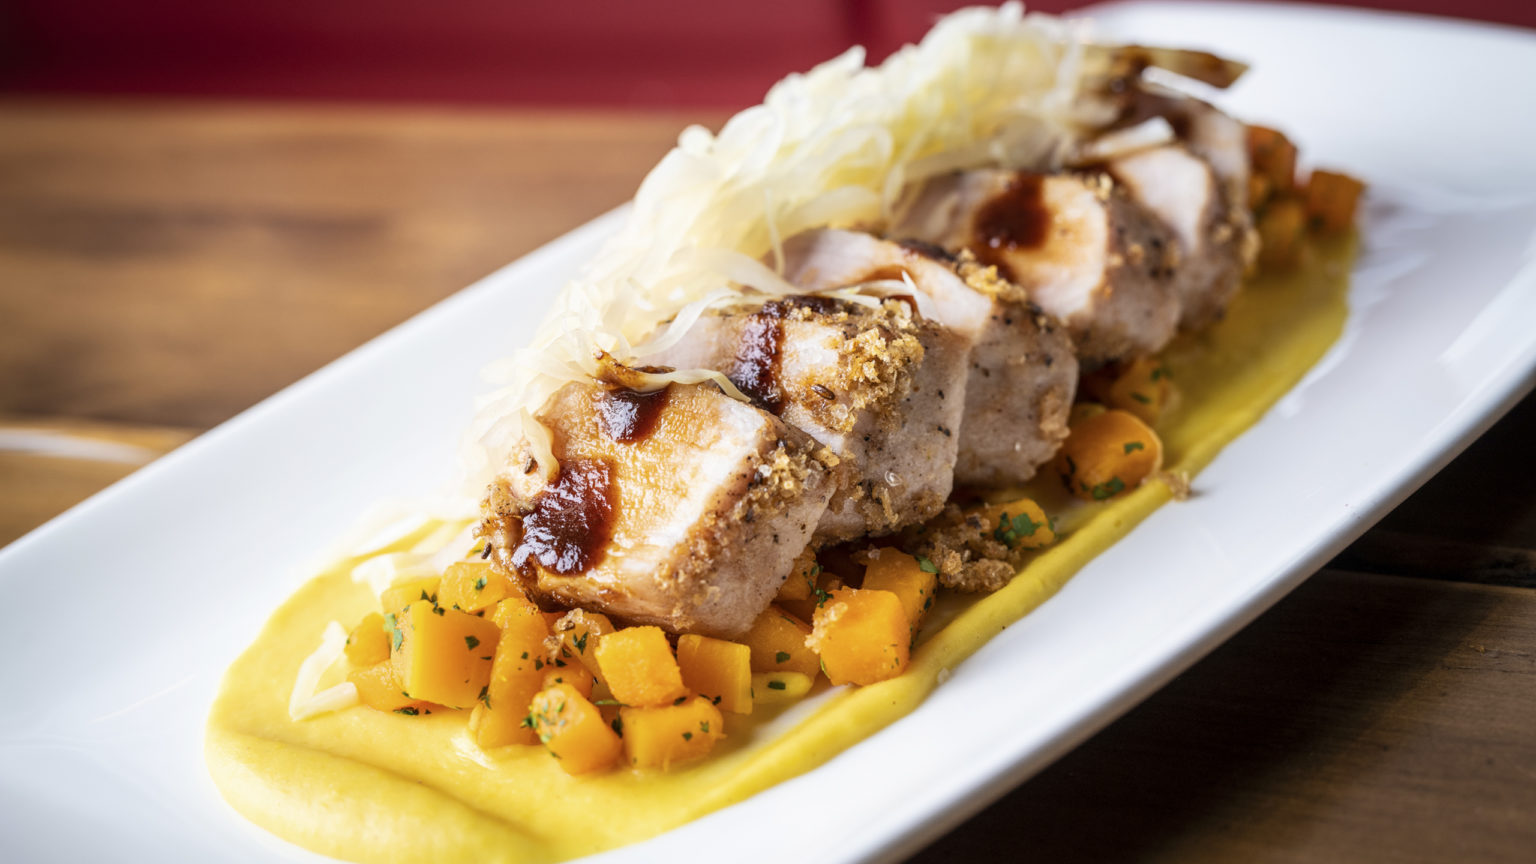 Caraway Crusted Pork Loin - Pickled Cabbage, Butternut Squash _ Corn Puree